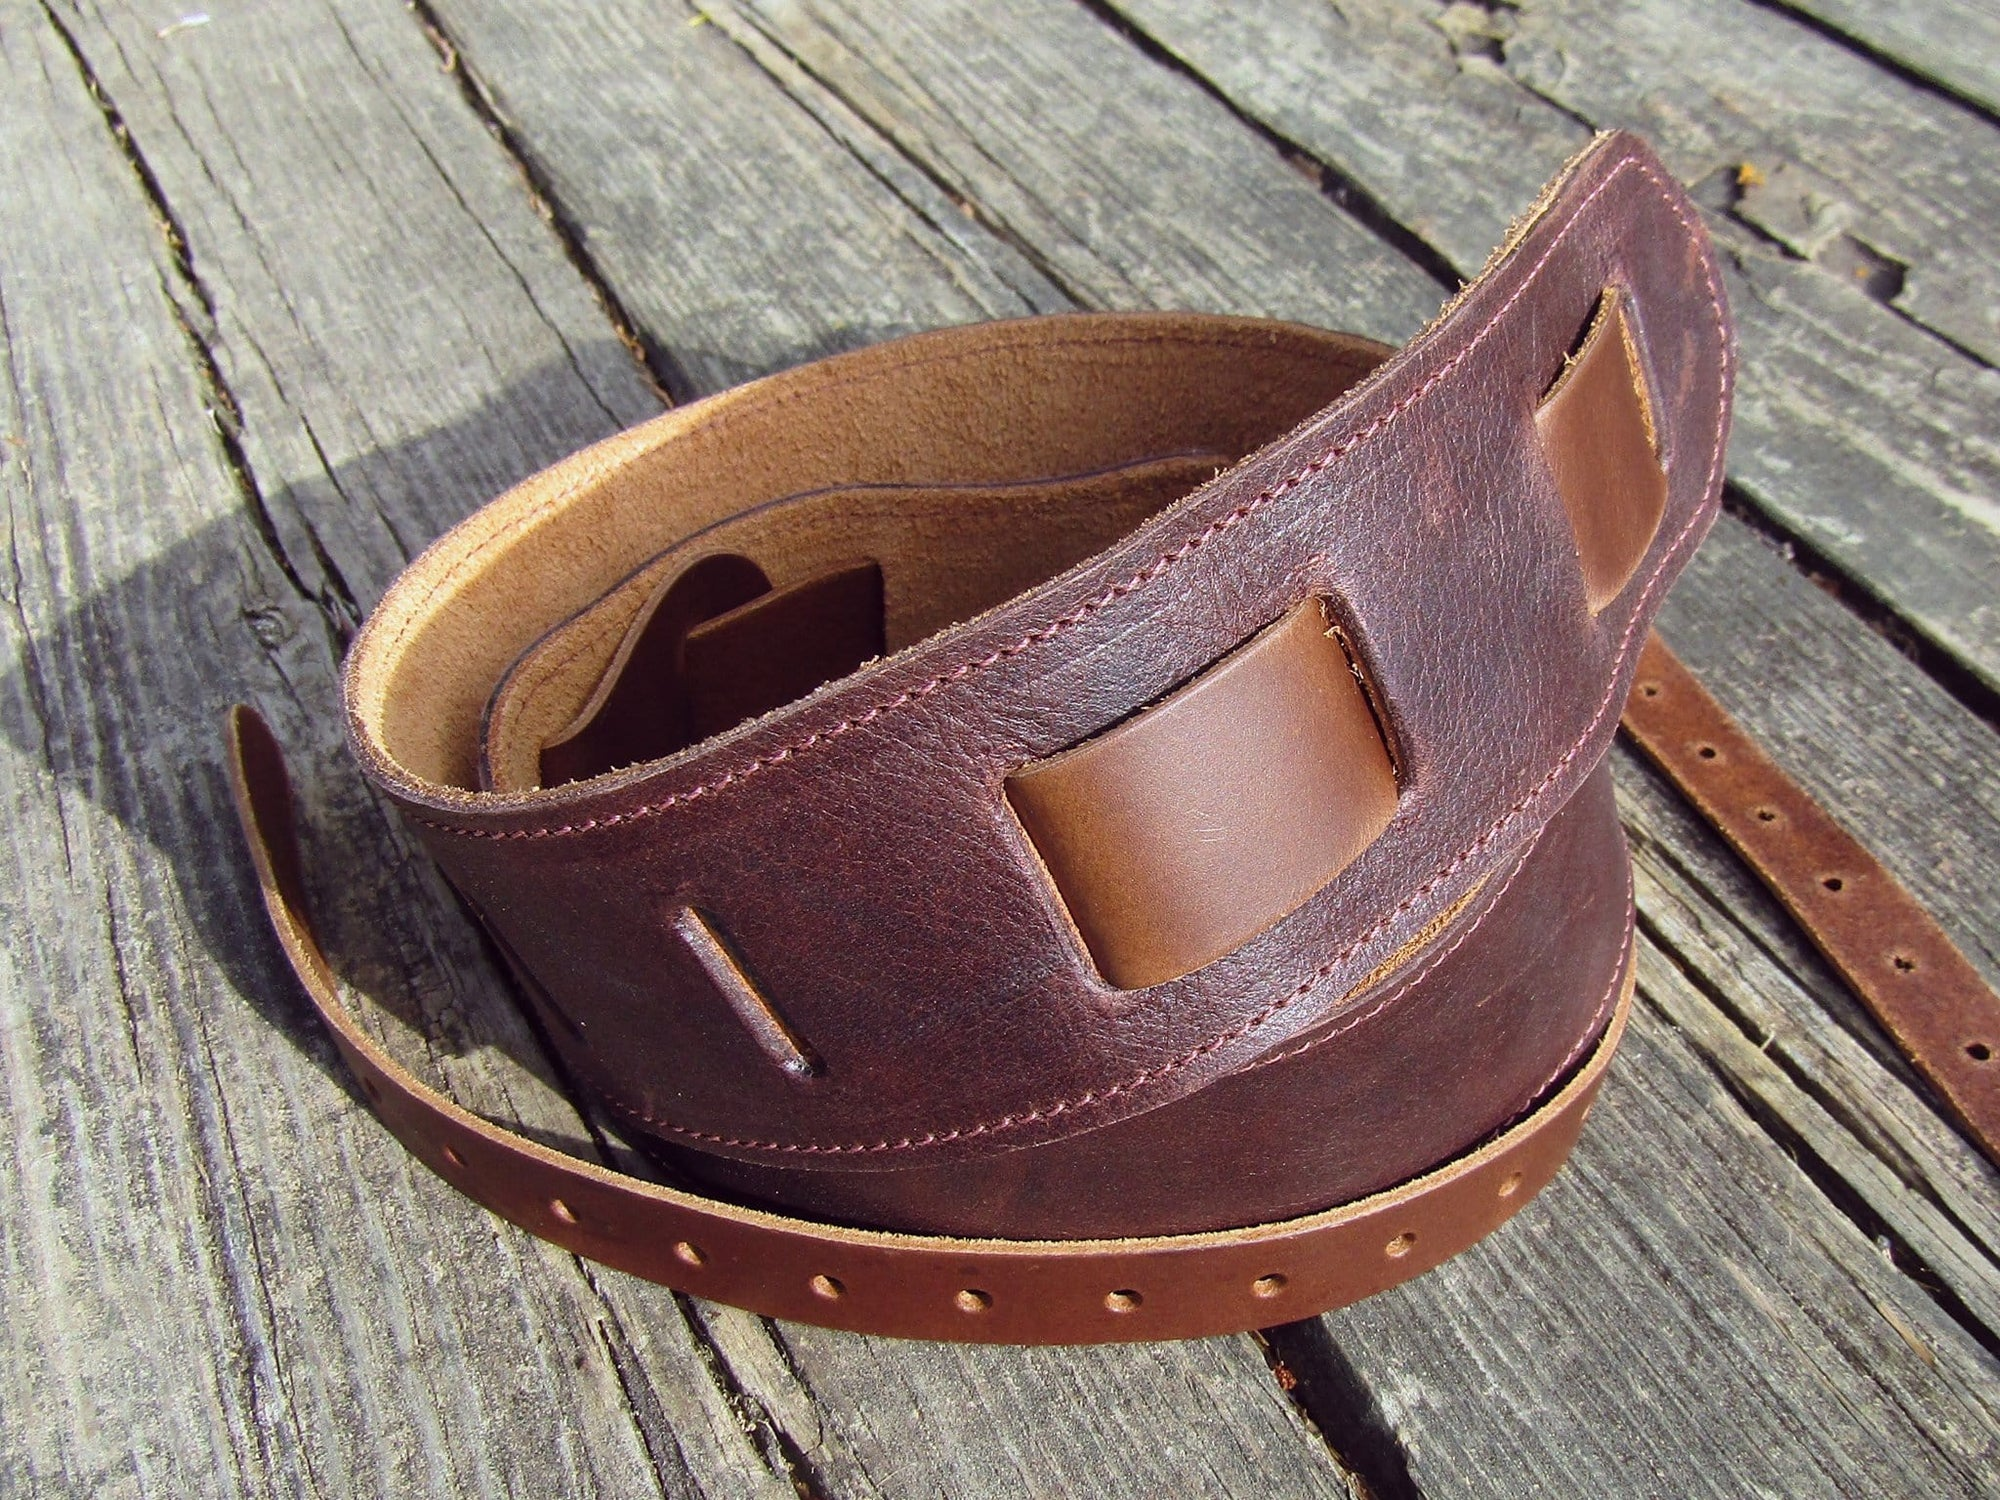 Classic Soft Leather Banjo Strap. Made in America.